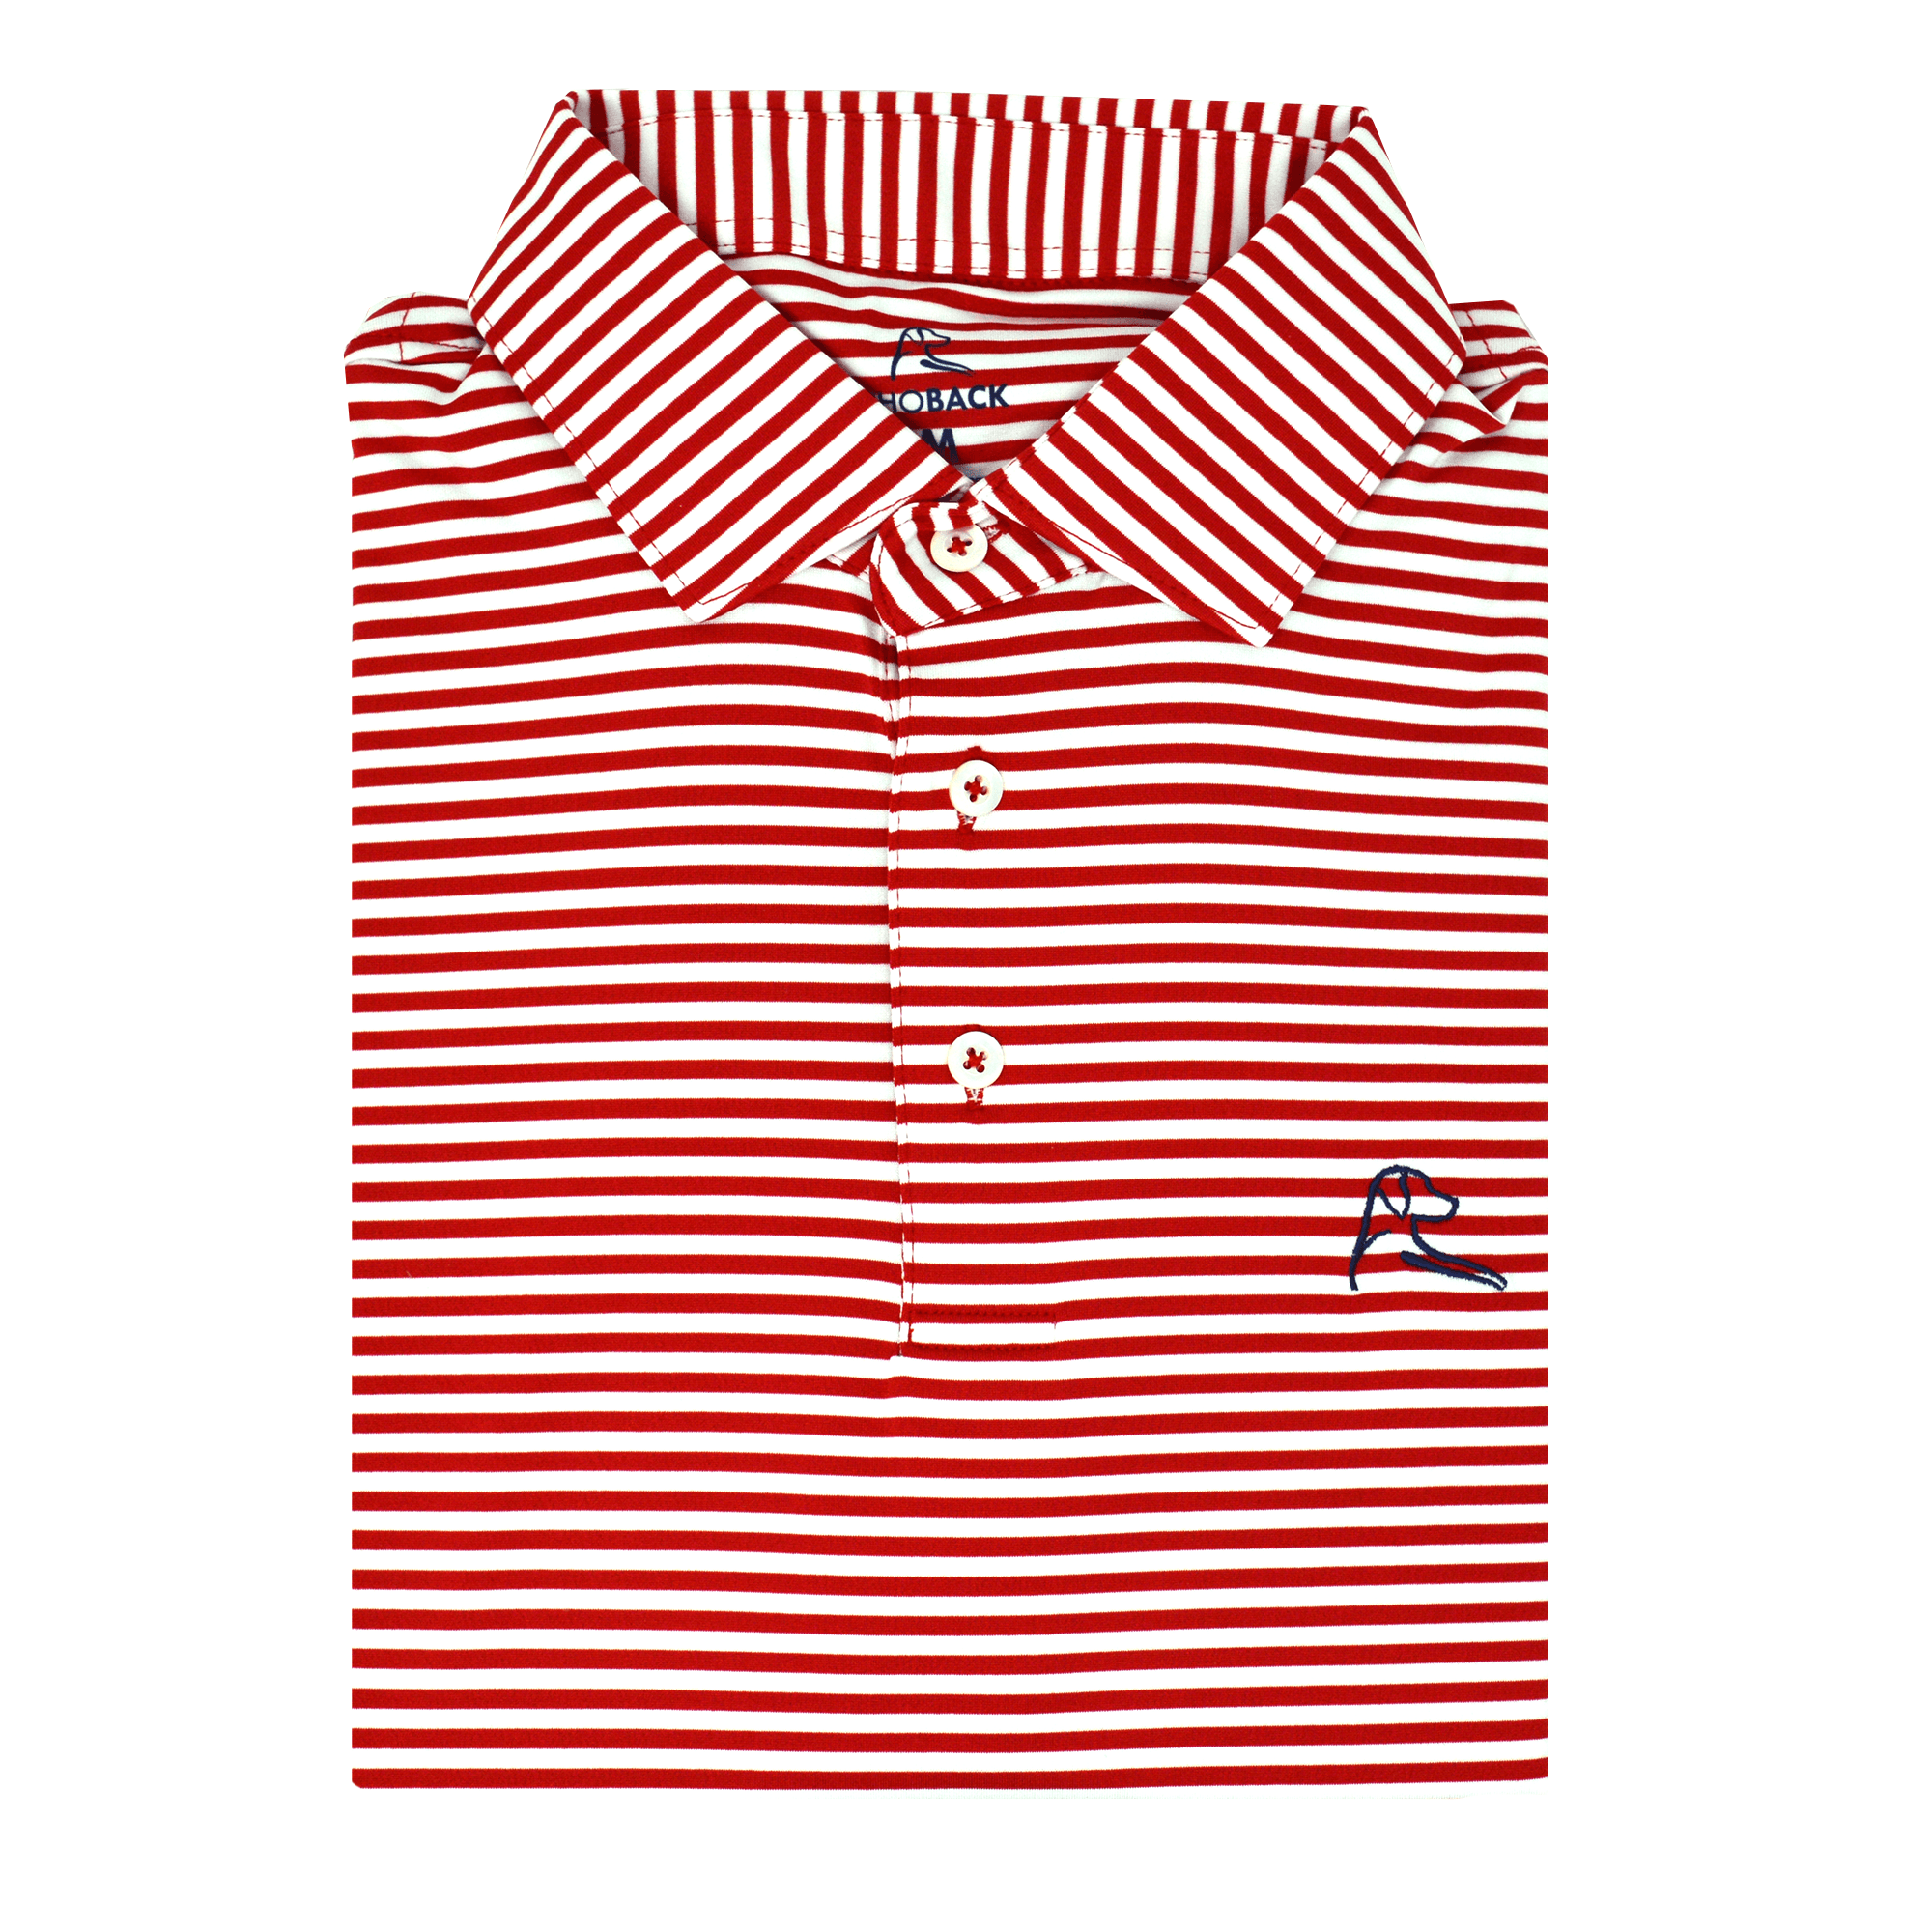 16c5f9af The Point Men's Performance Polo - Moisture Wicking Polos | Rhoback -  RHOBACK